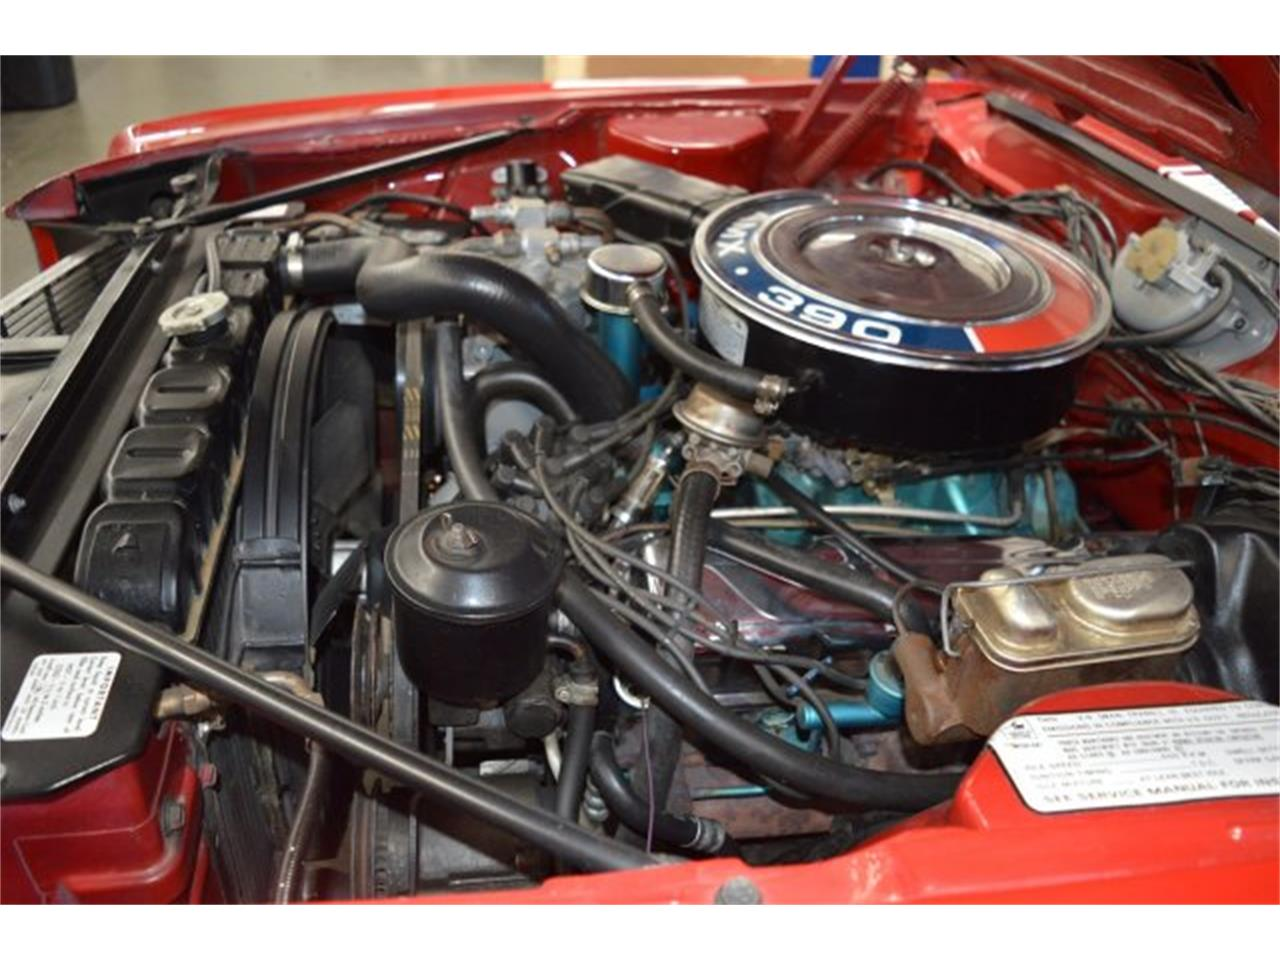 Large Picture of 1968 AMC AMX located in San Jose California - $45,000.00 - JTT8